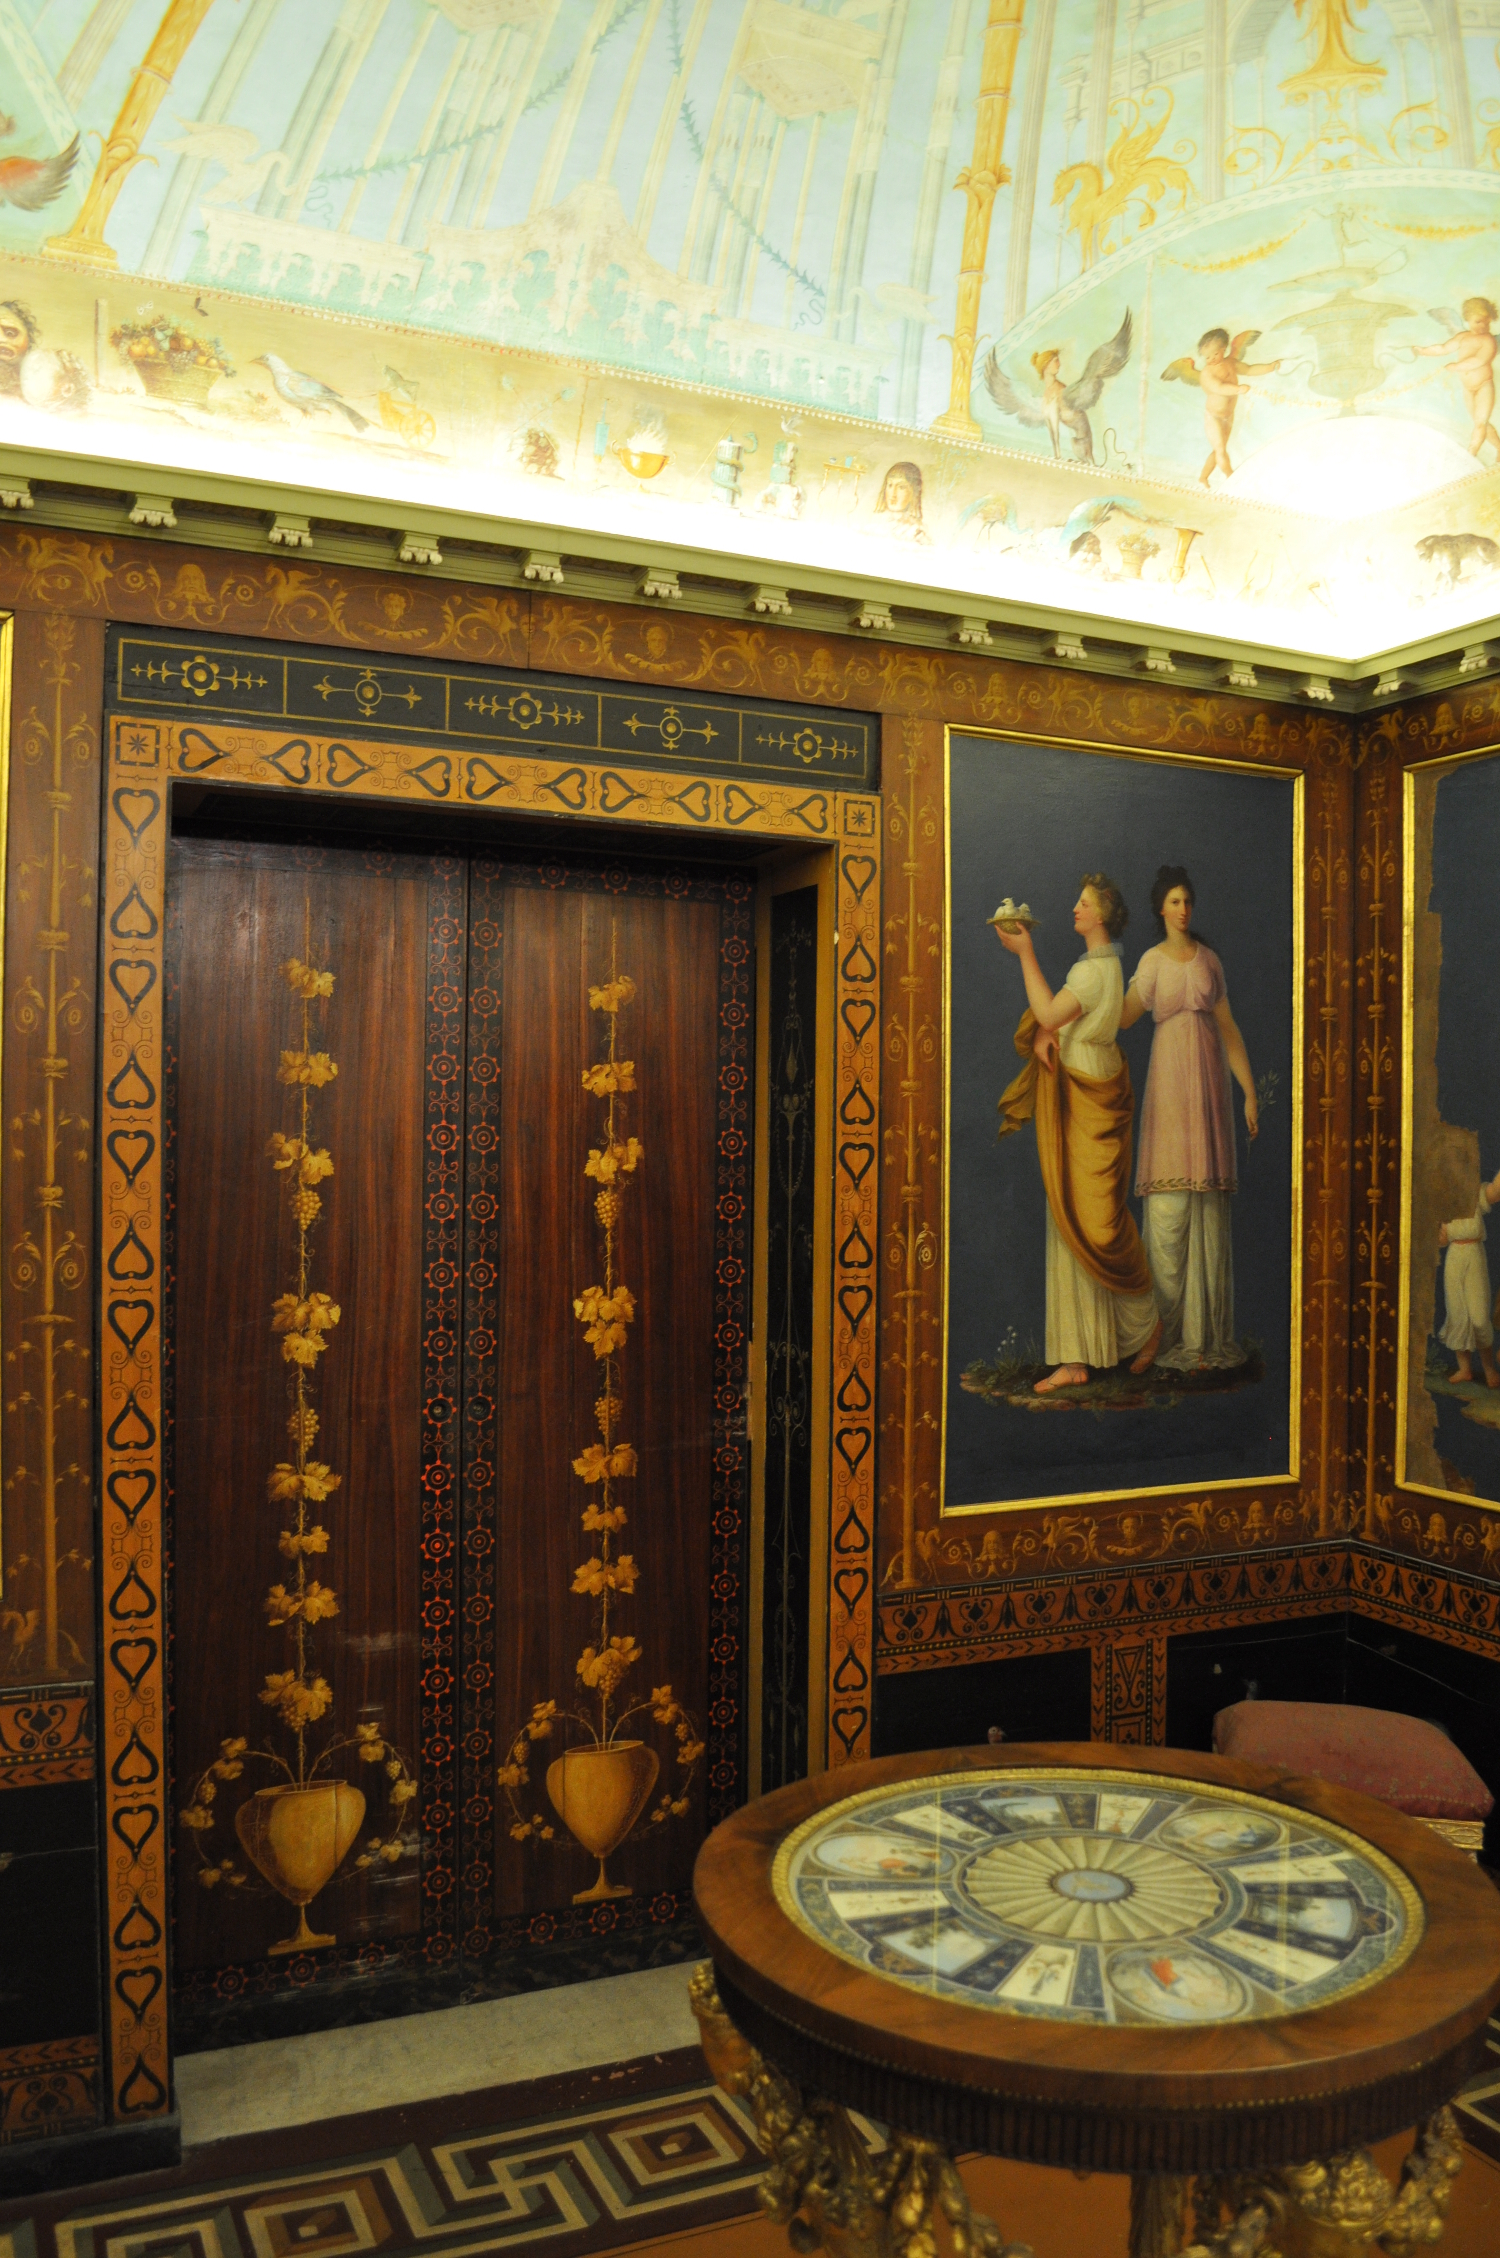 rocaille-blog-palazzina-cinese-palermo-19